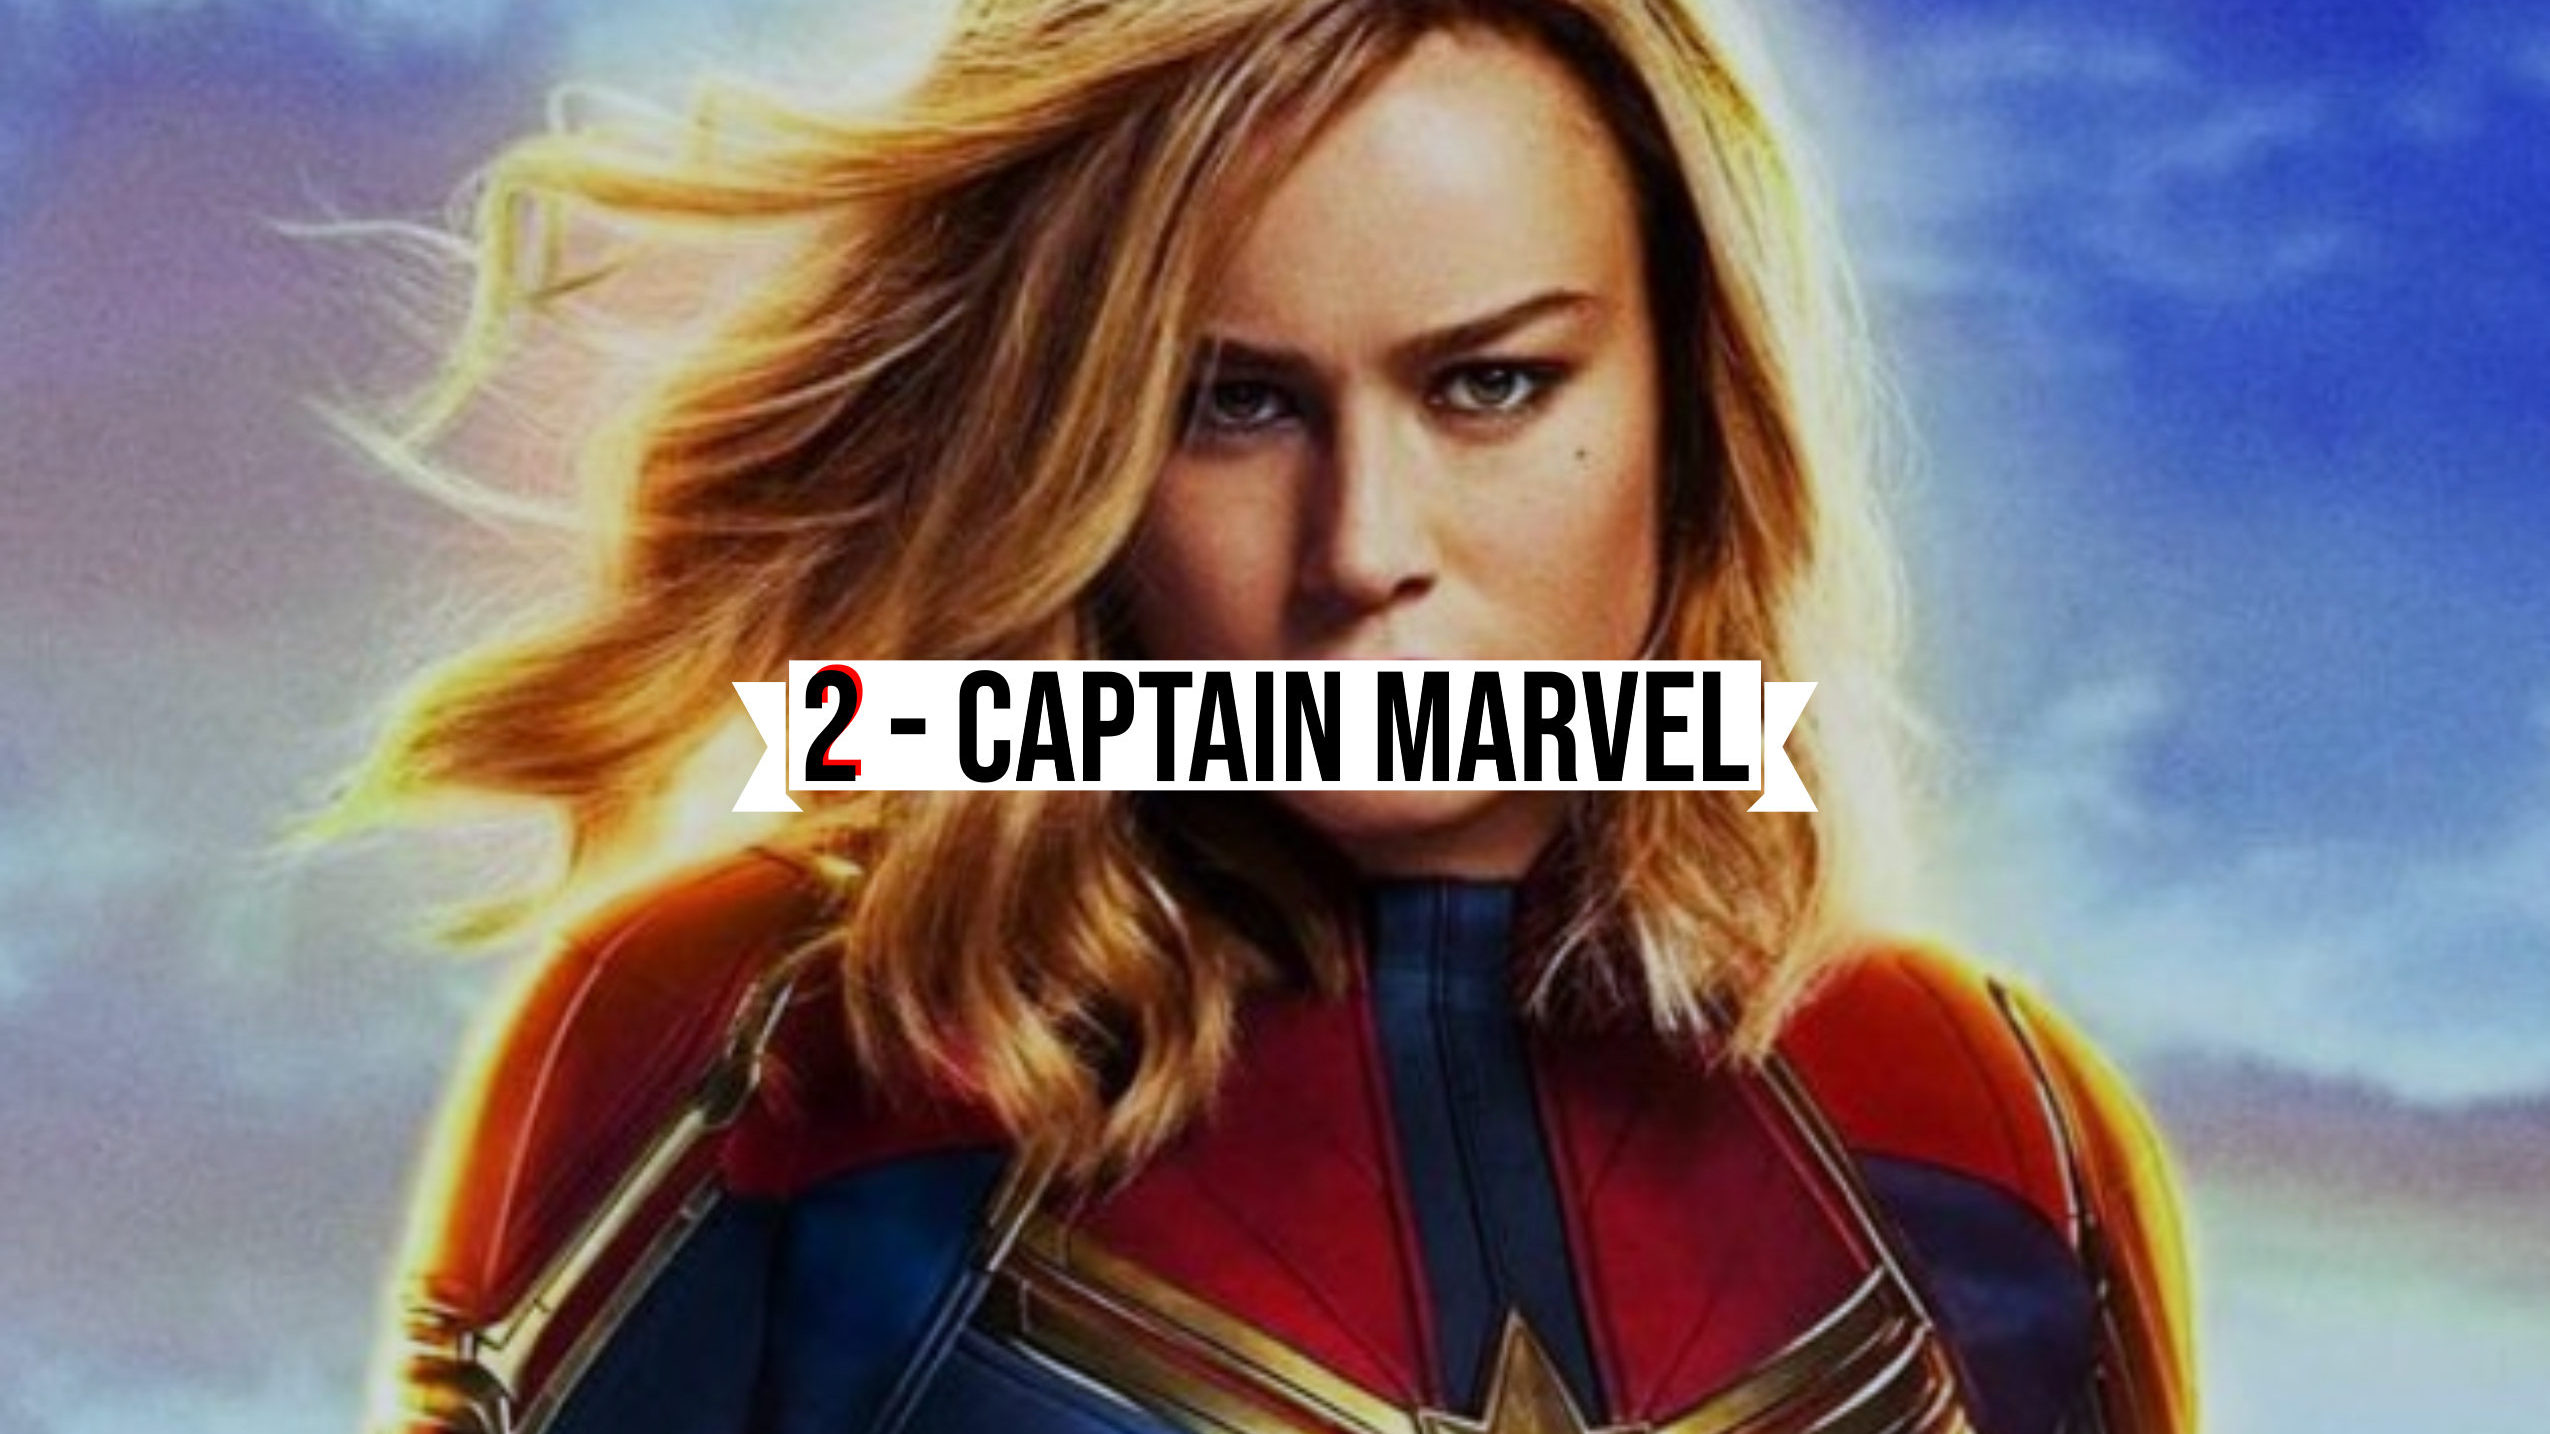 2 - Captain Marvel